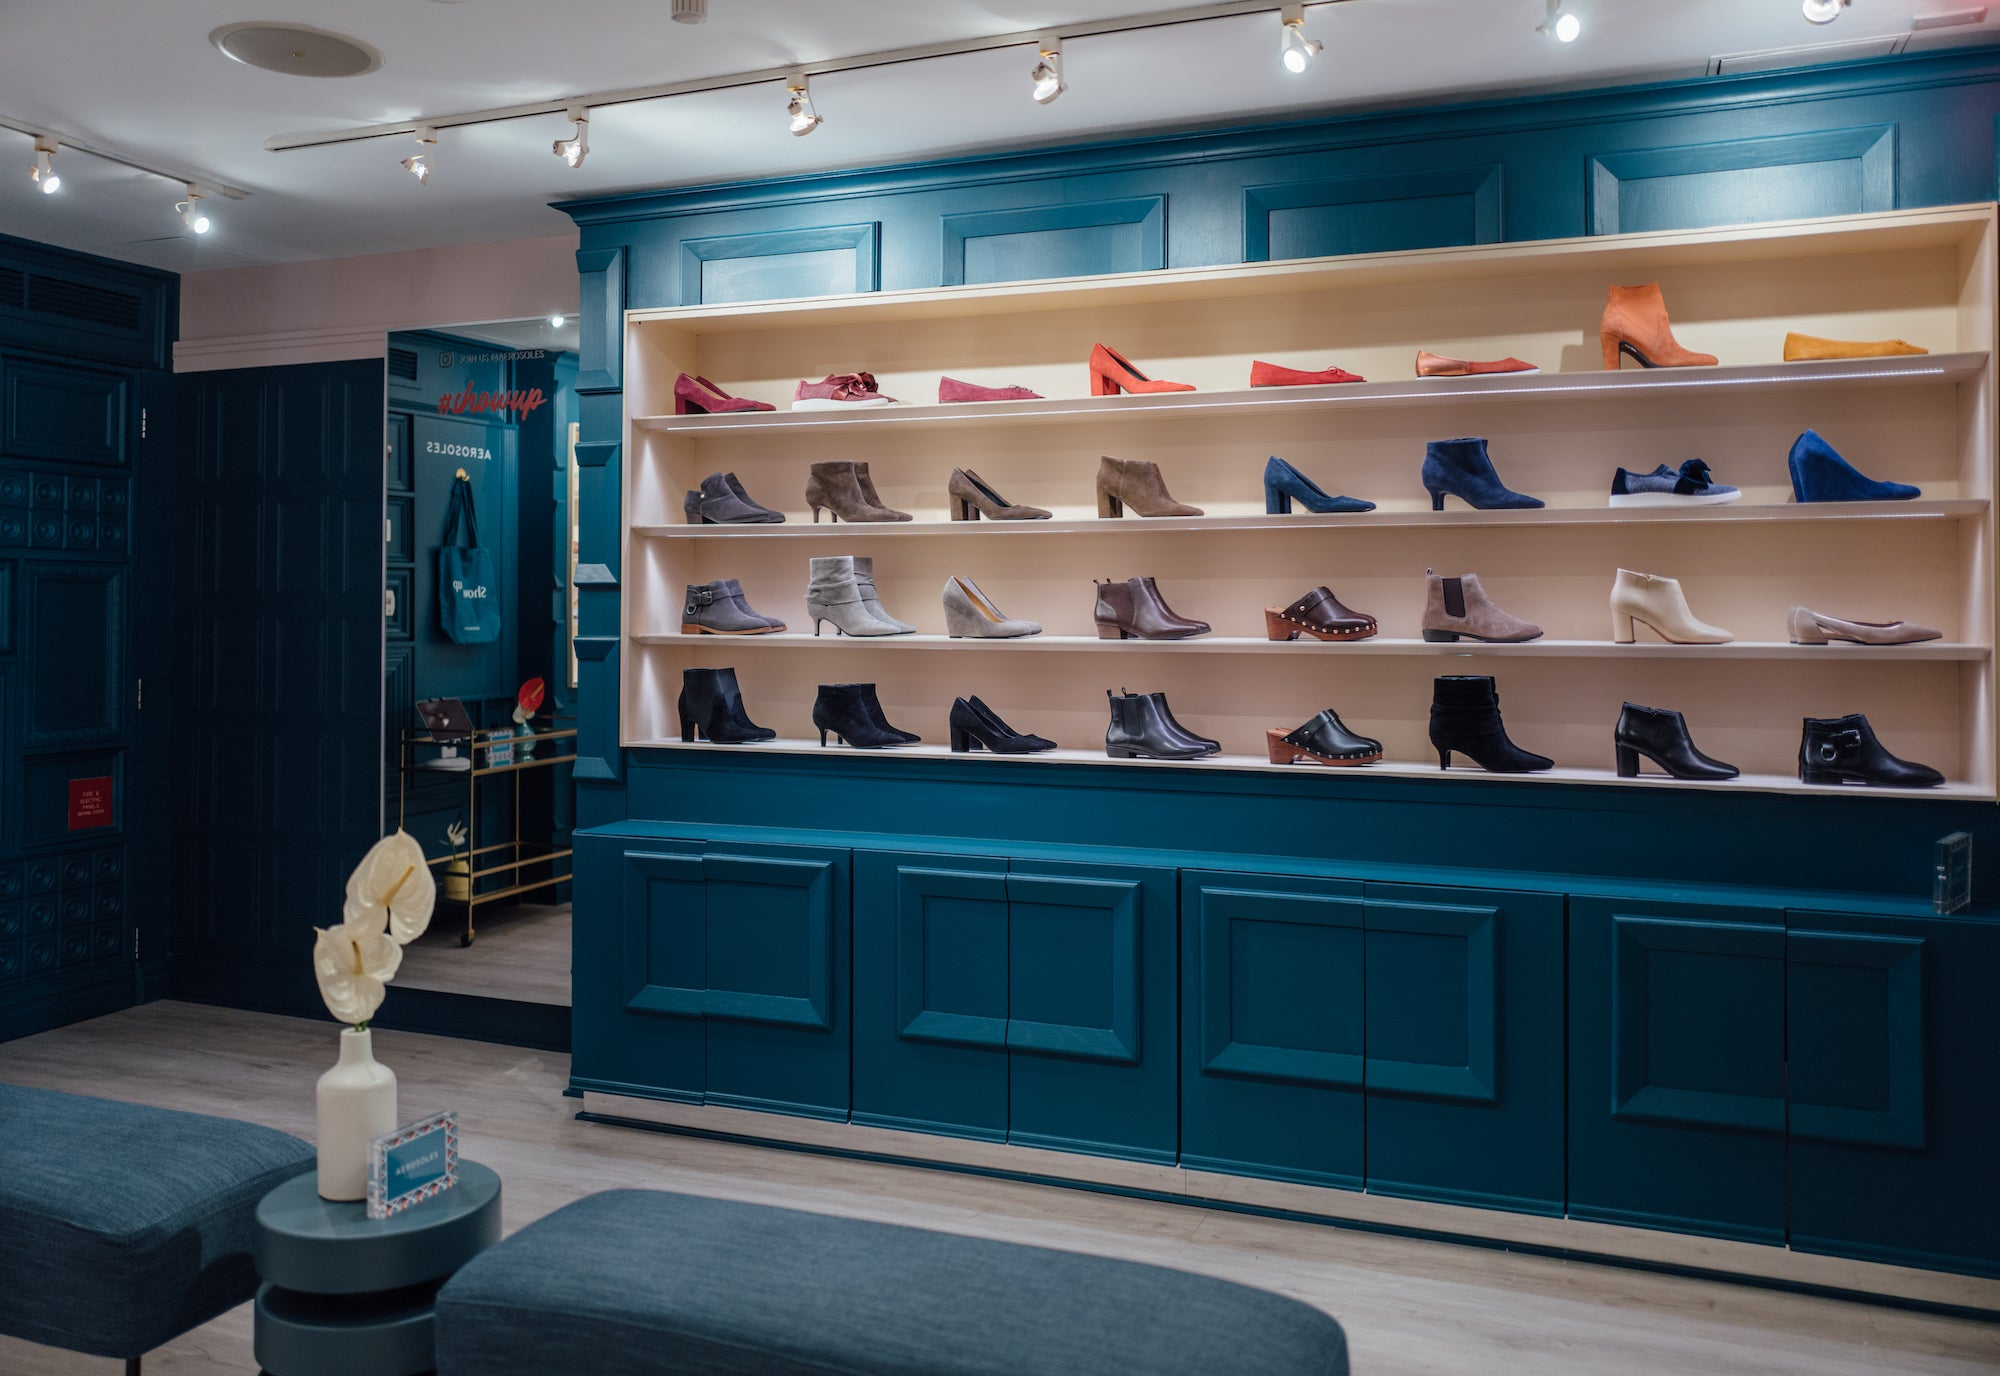 Welcome to the Fit Shop – Aerosoles